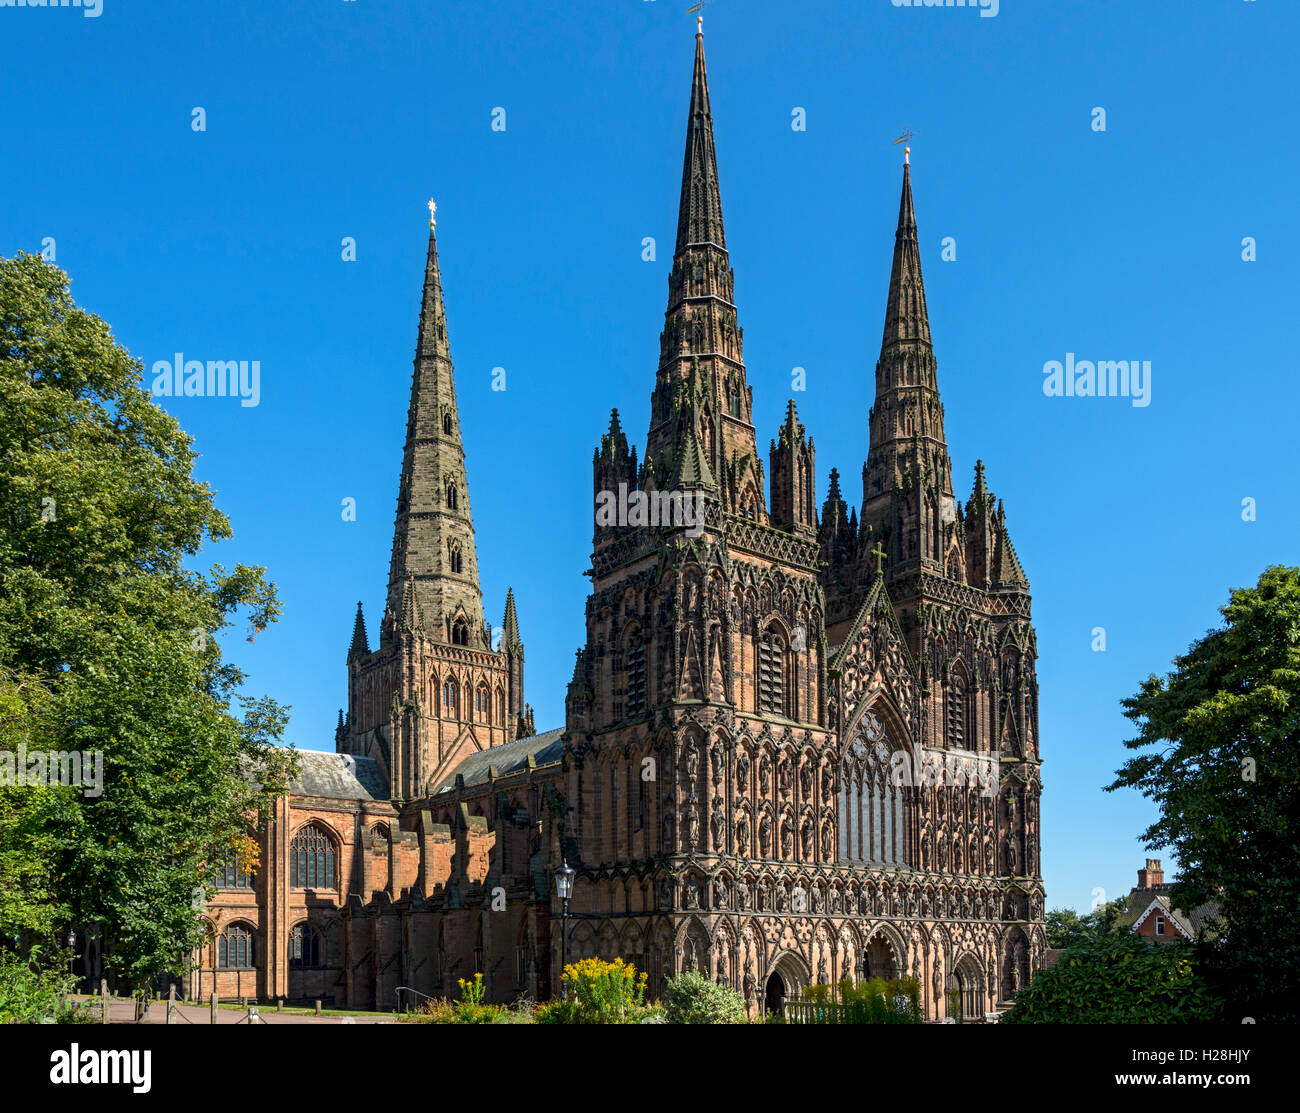 The West Front and spires of Lichfield Cathedral from the north west, Lichfield, Staffordshire, England, UK - Stock Image